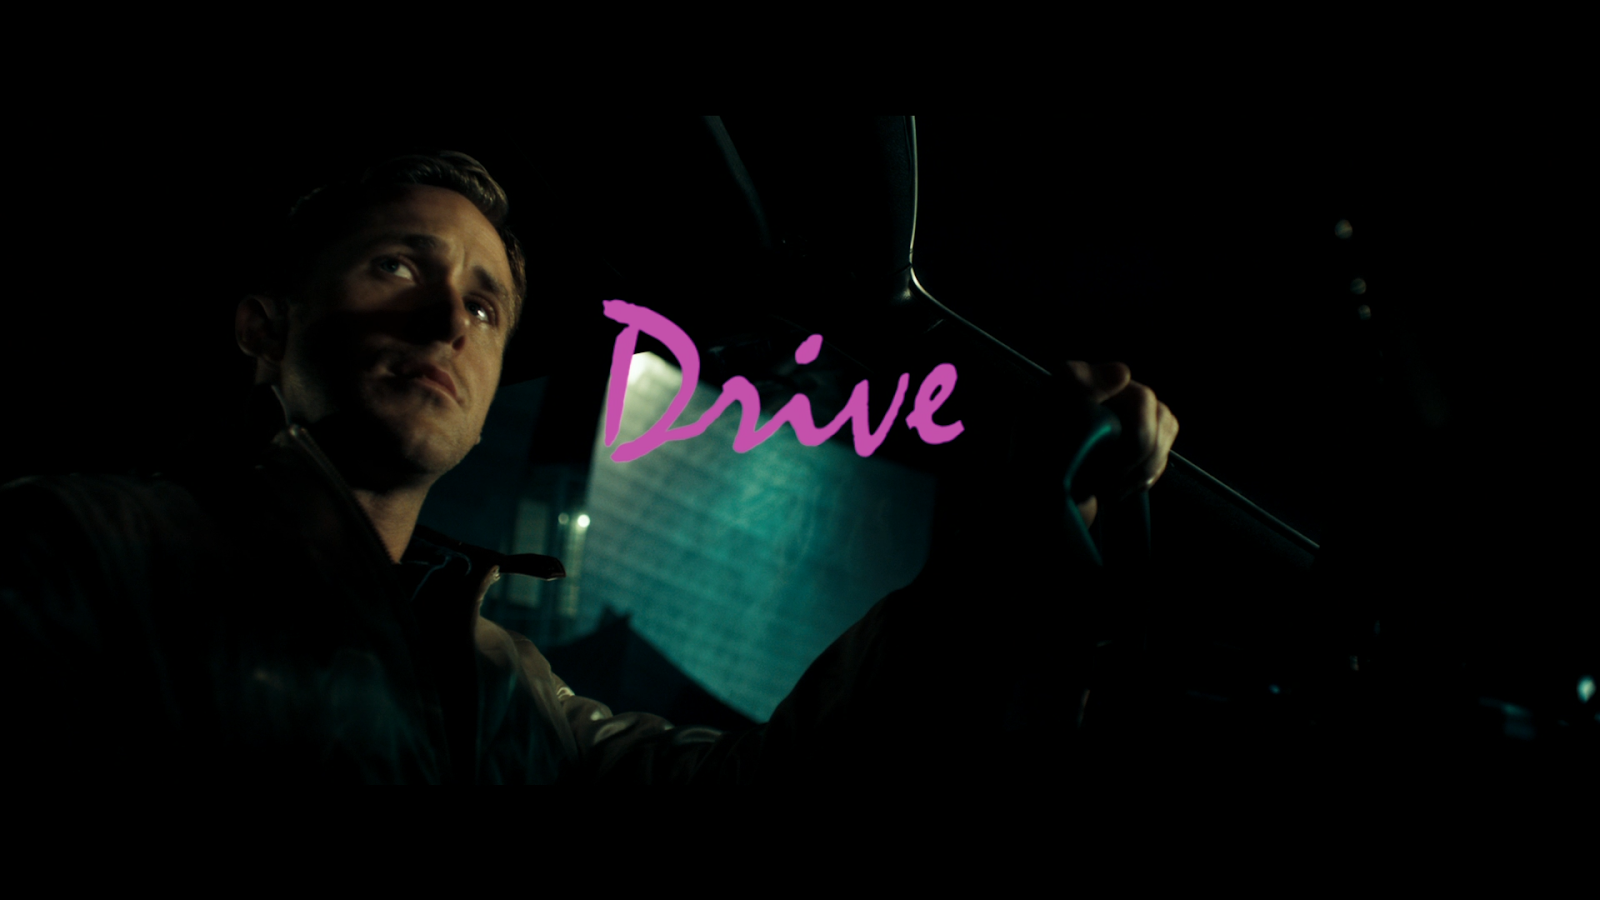 drive movie wallpaper images - photo #19